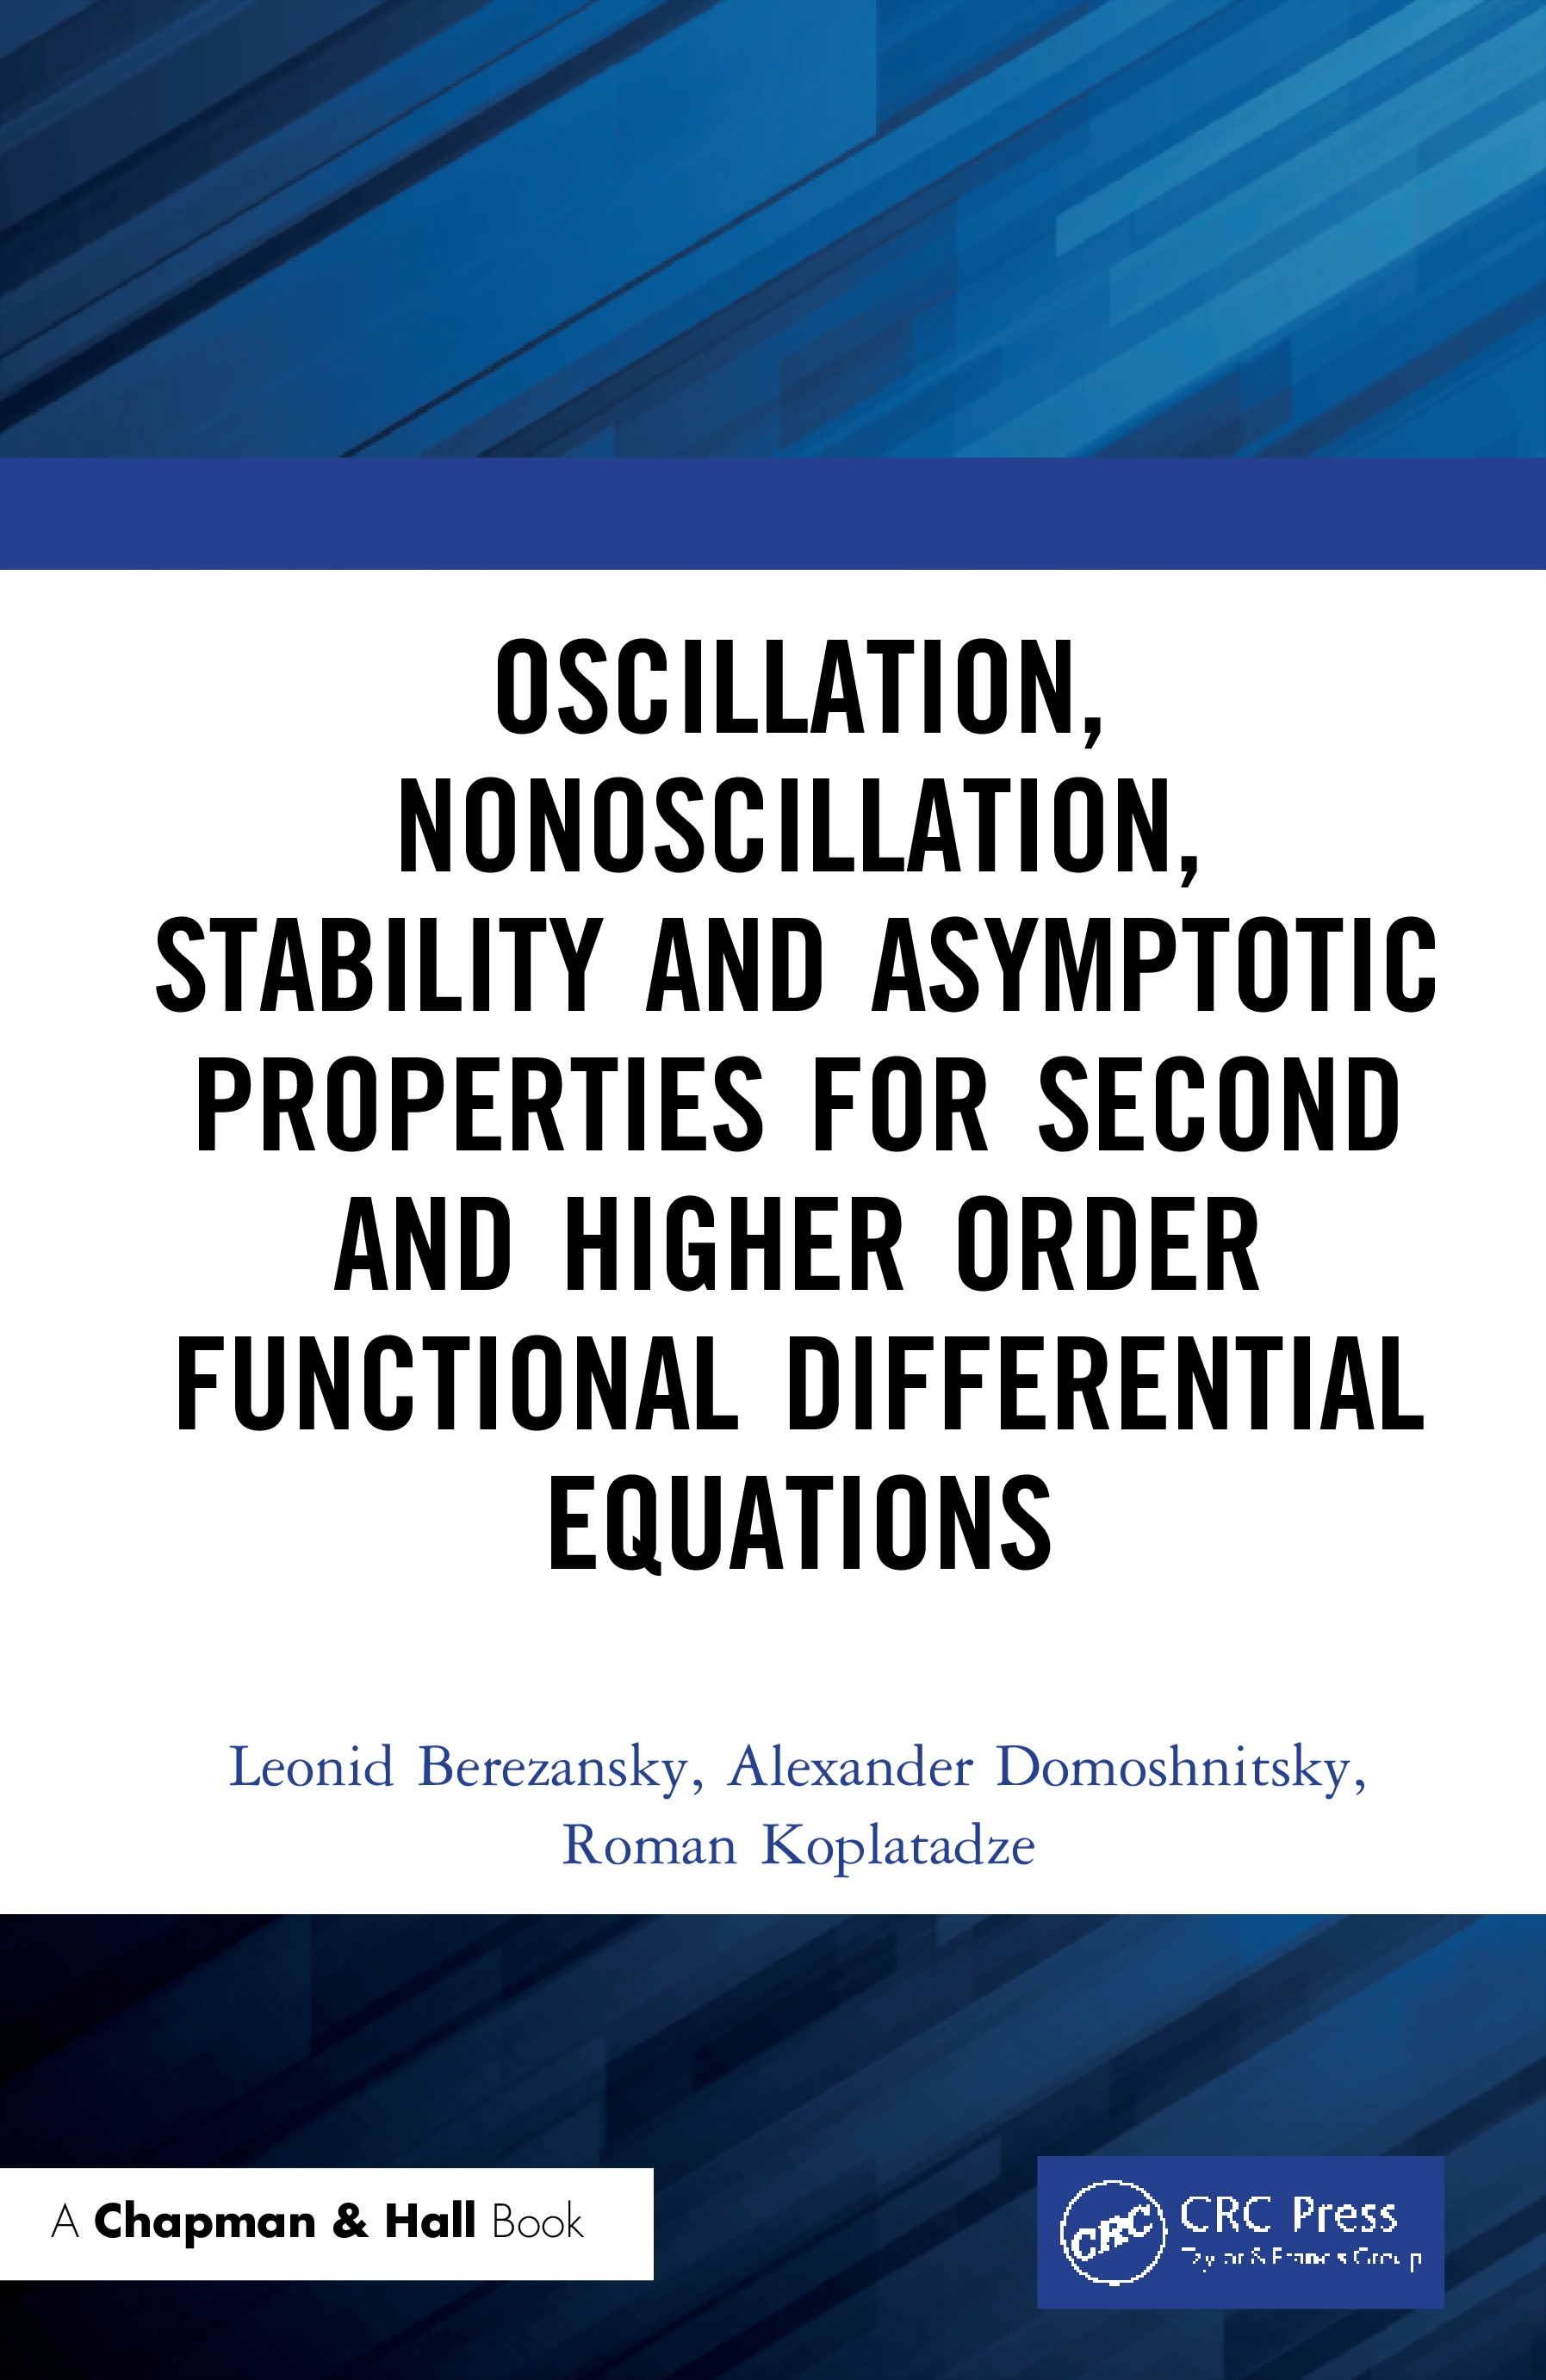 Oscillation, Nonoscillation, Stability and Asymptotic Properties for Second and Higher Order Functional Differential Equations: 1st Edition (Hardback) book cover